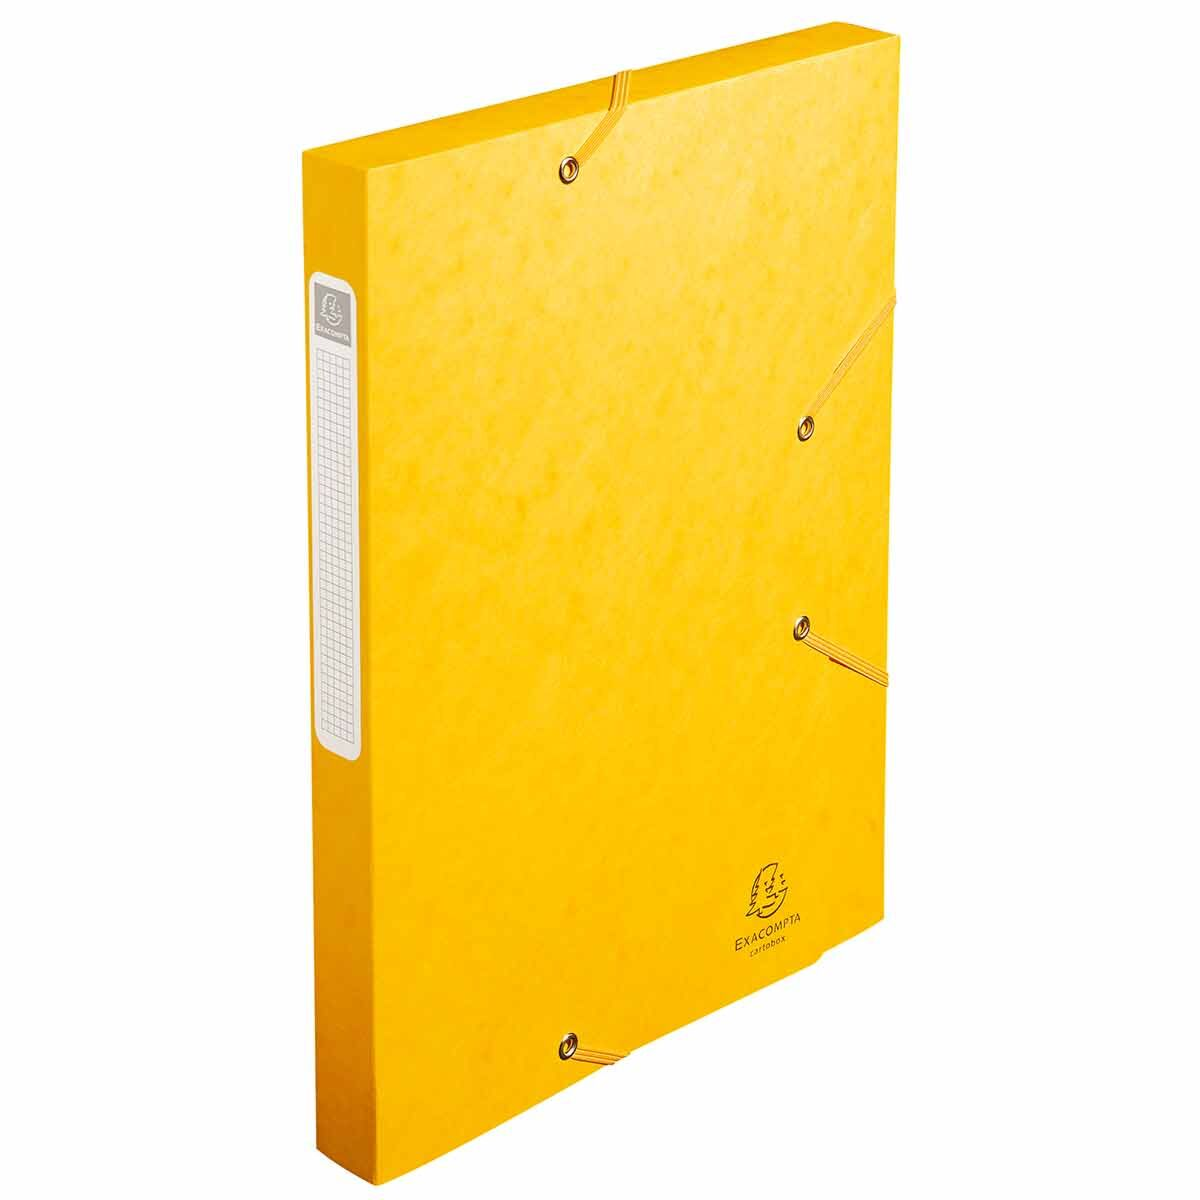 Exacompta Elasticated Box File Pressboard A4 25mm Pack of 25 Yellow